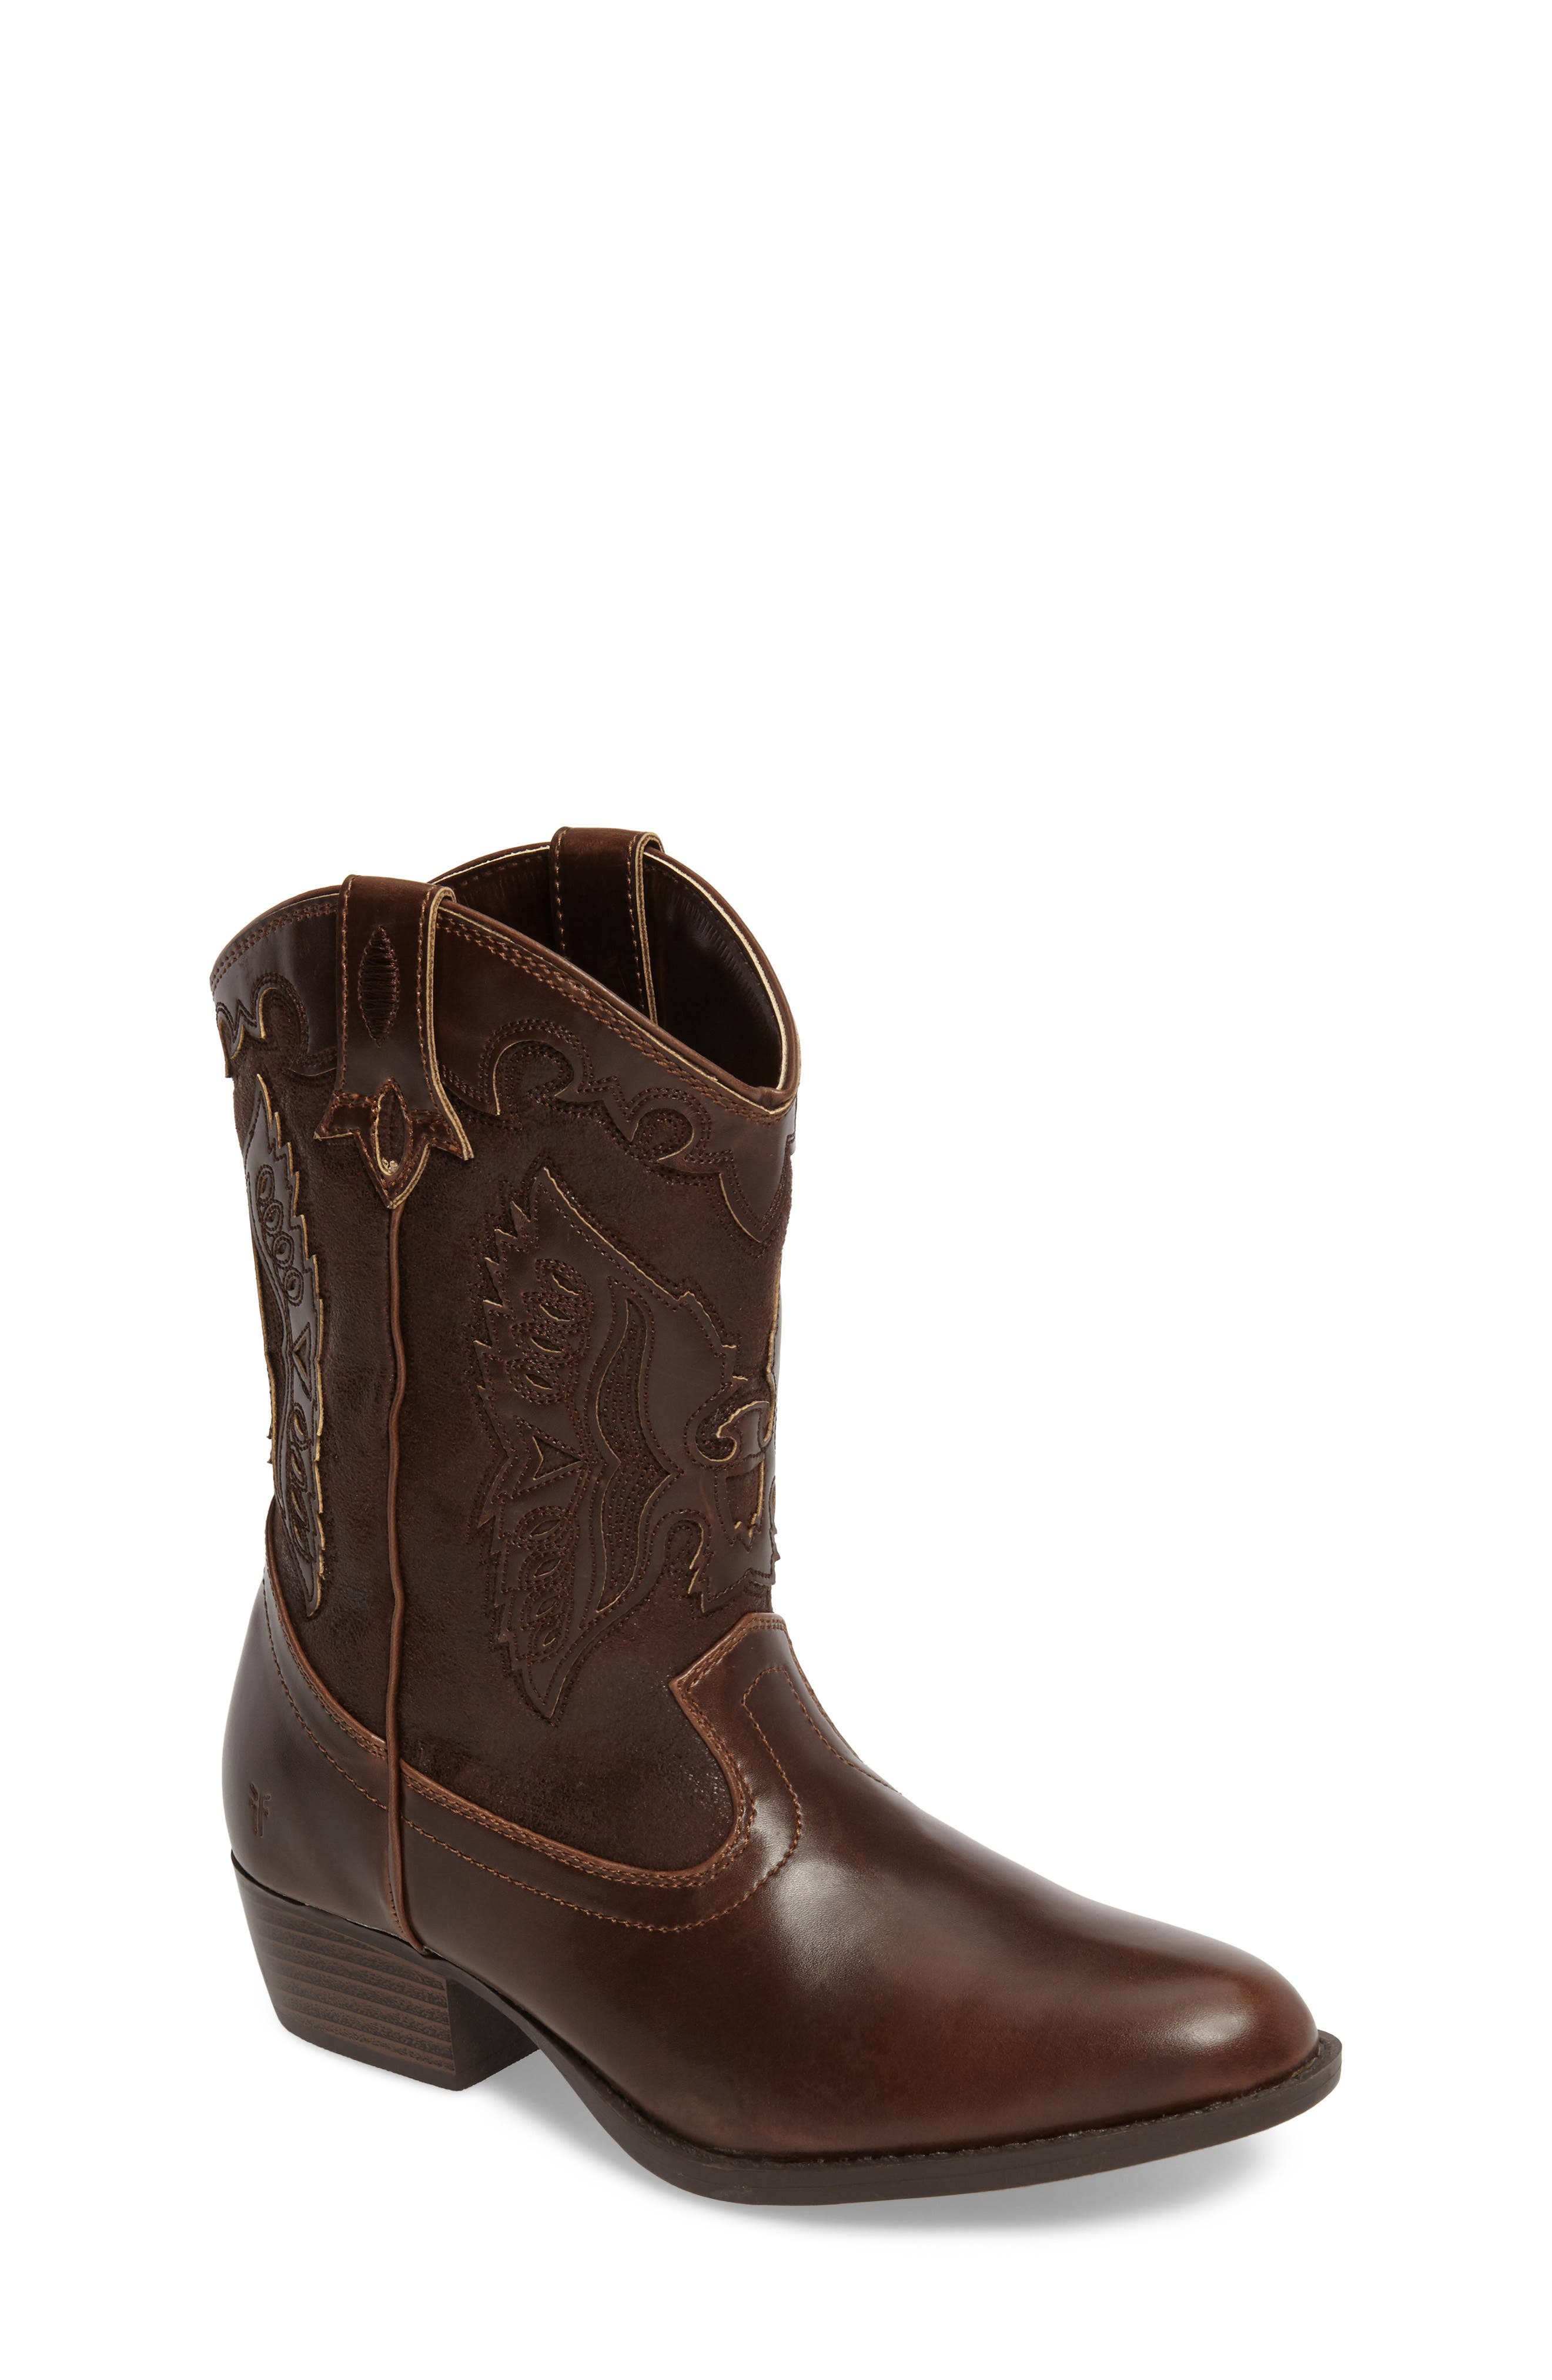 FRYE, Carson Firebird Cowgirl Boot, Main thumbnail 1, color, BROWN